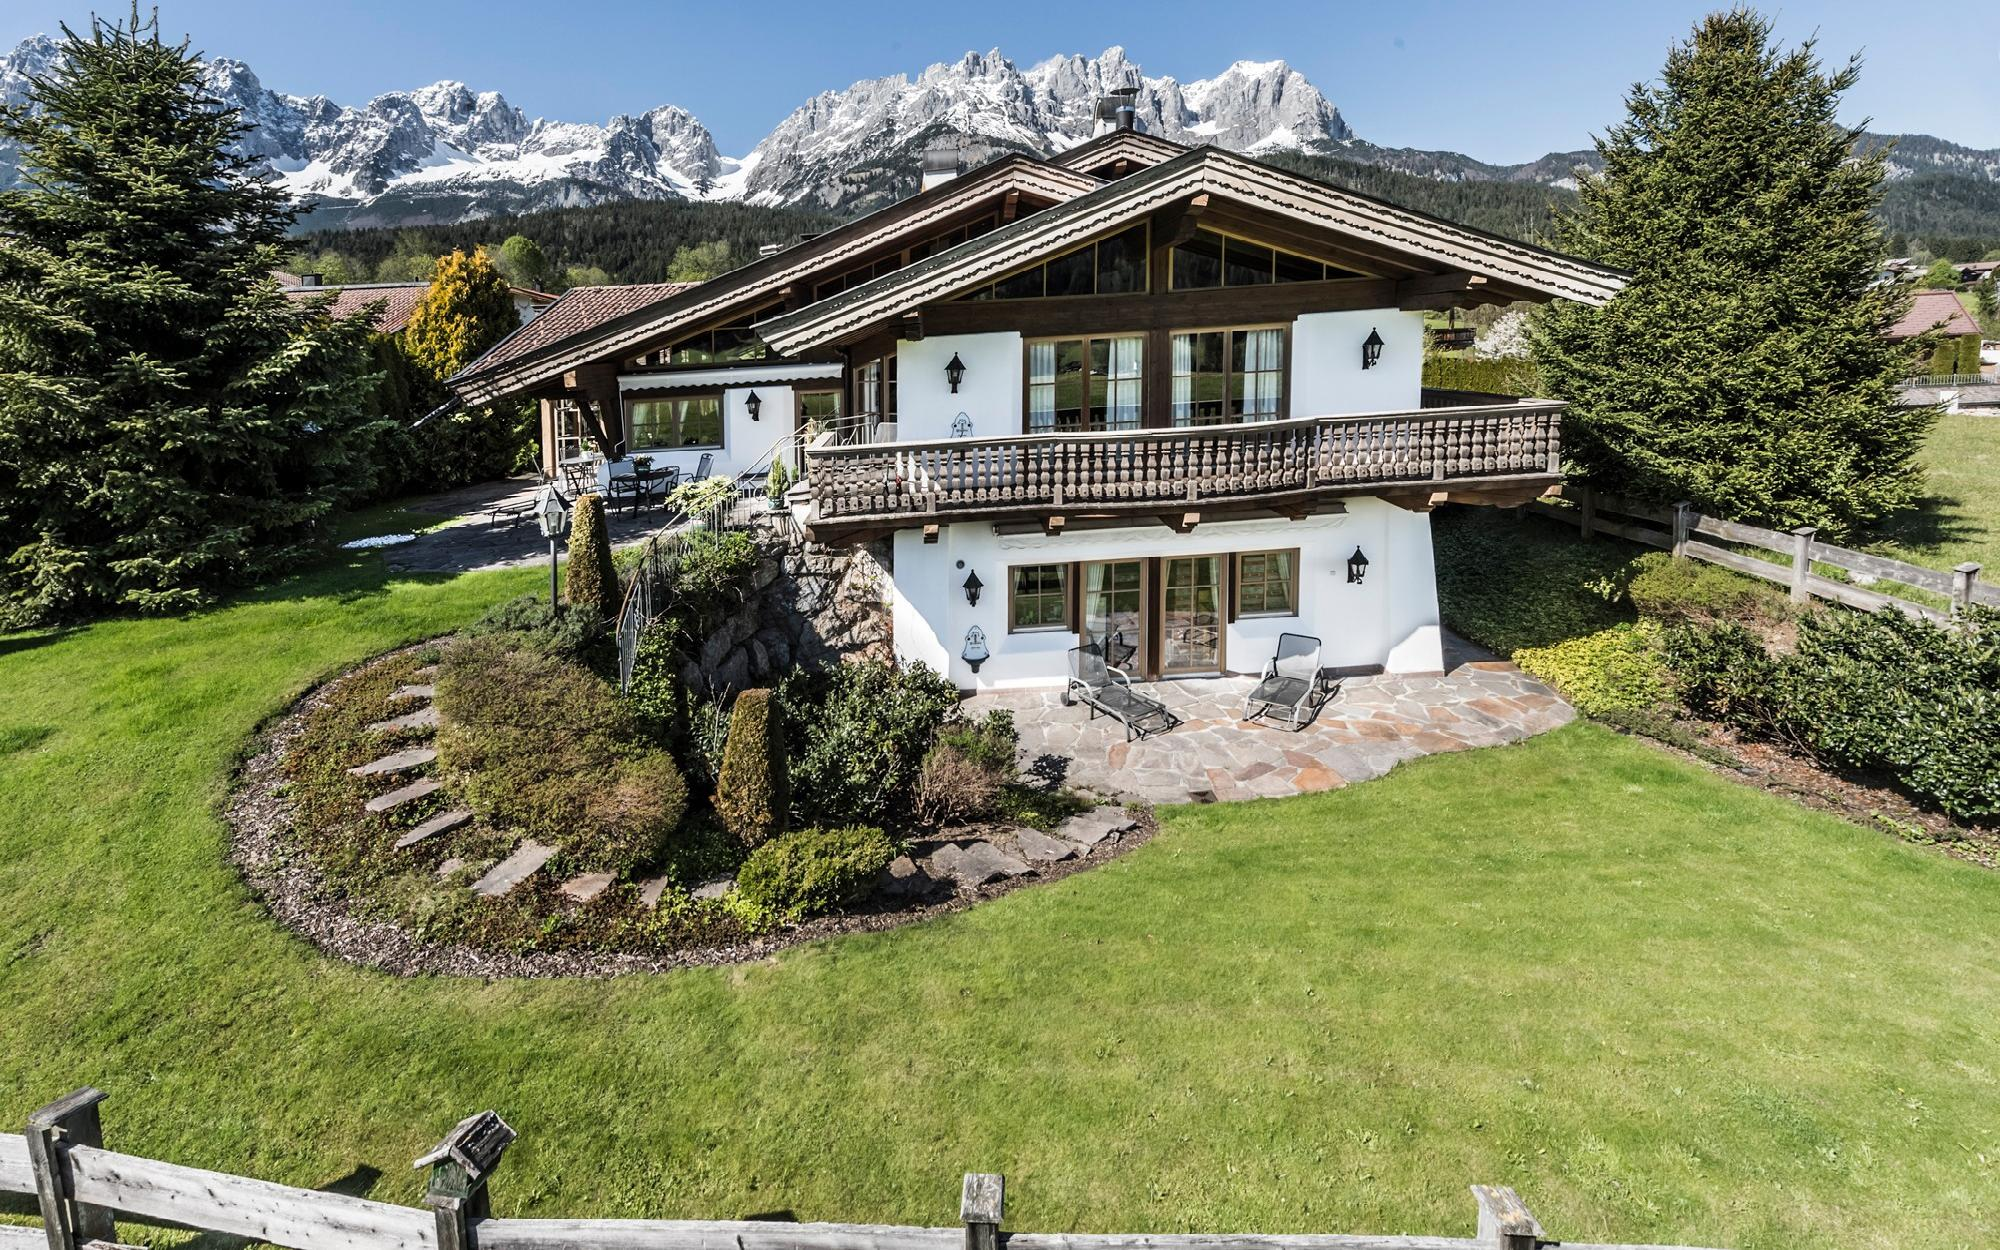 Tyrolean Traditional Chalet in a prime location of Going for Sale